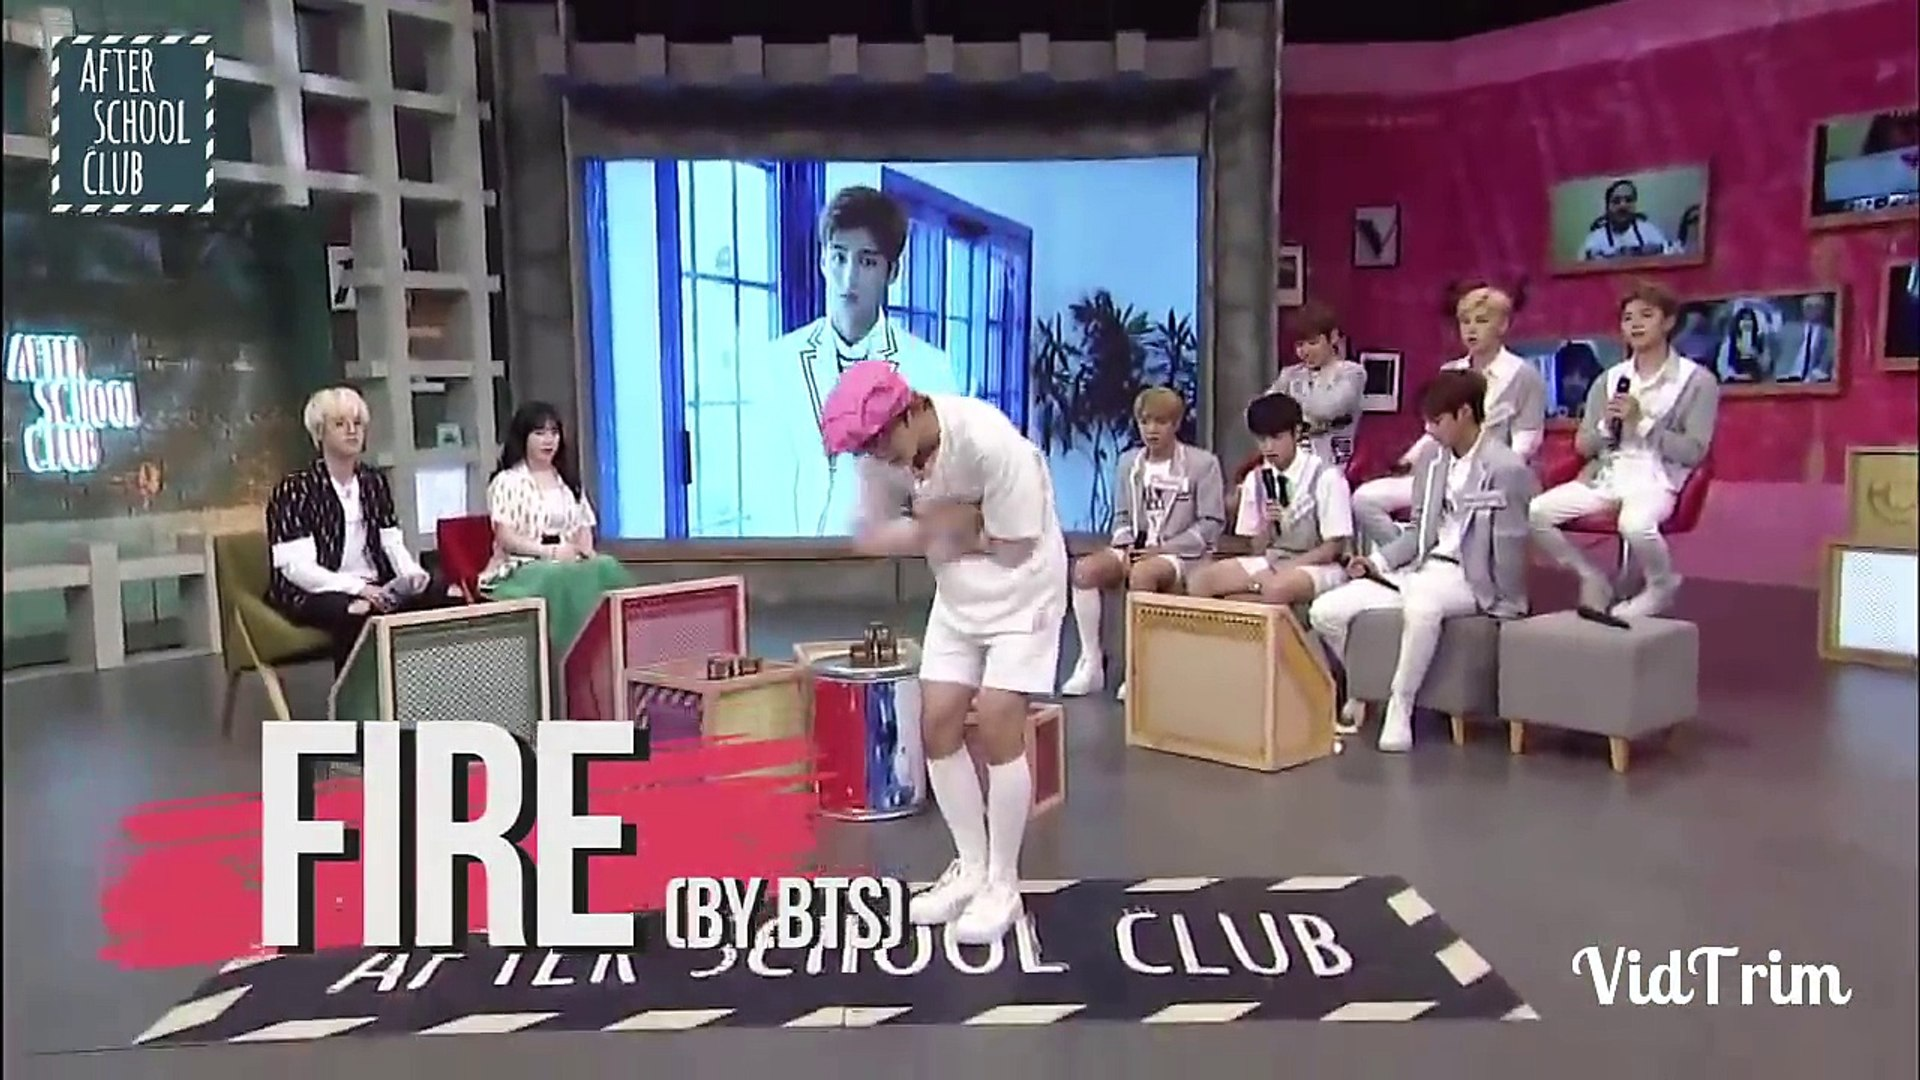 Boy group dancing to other boy group